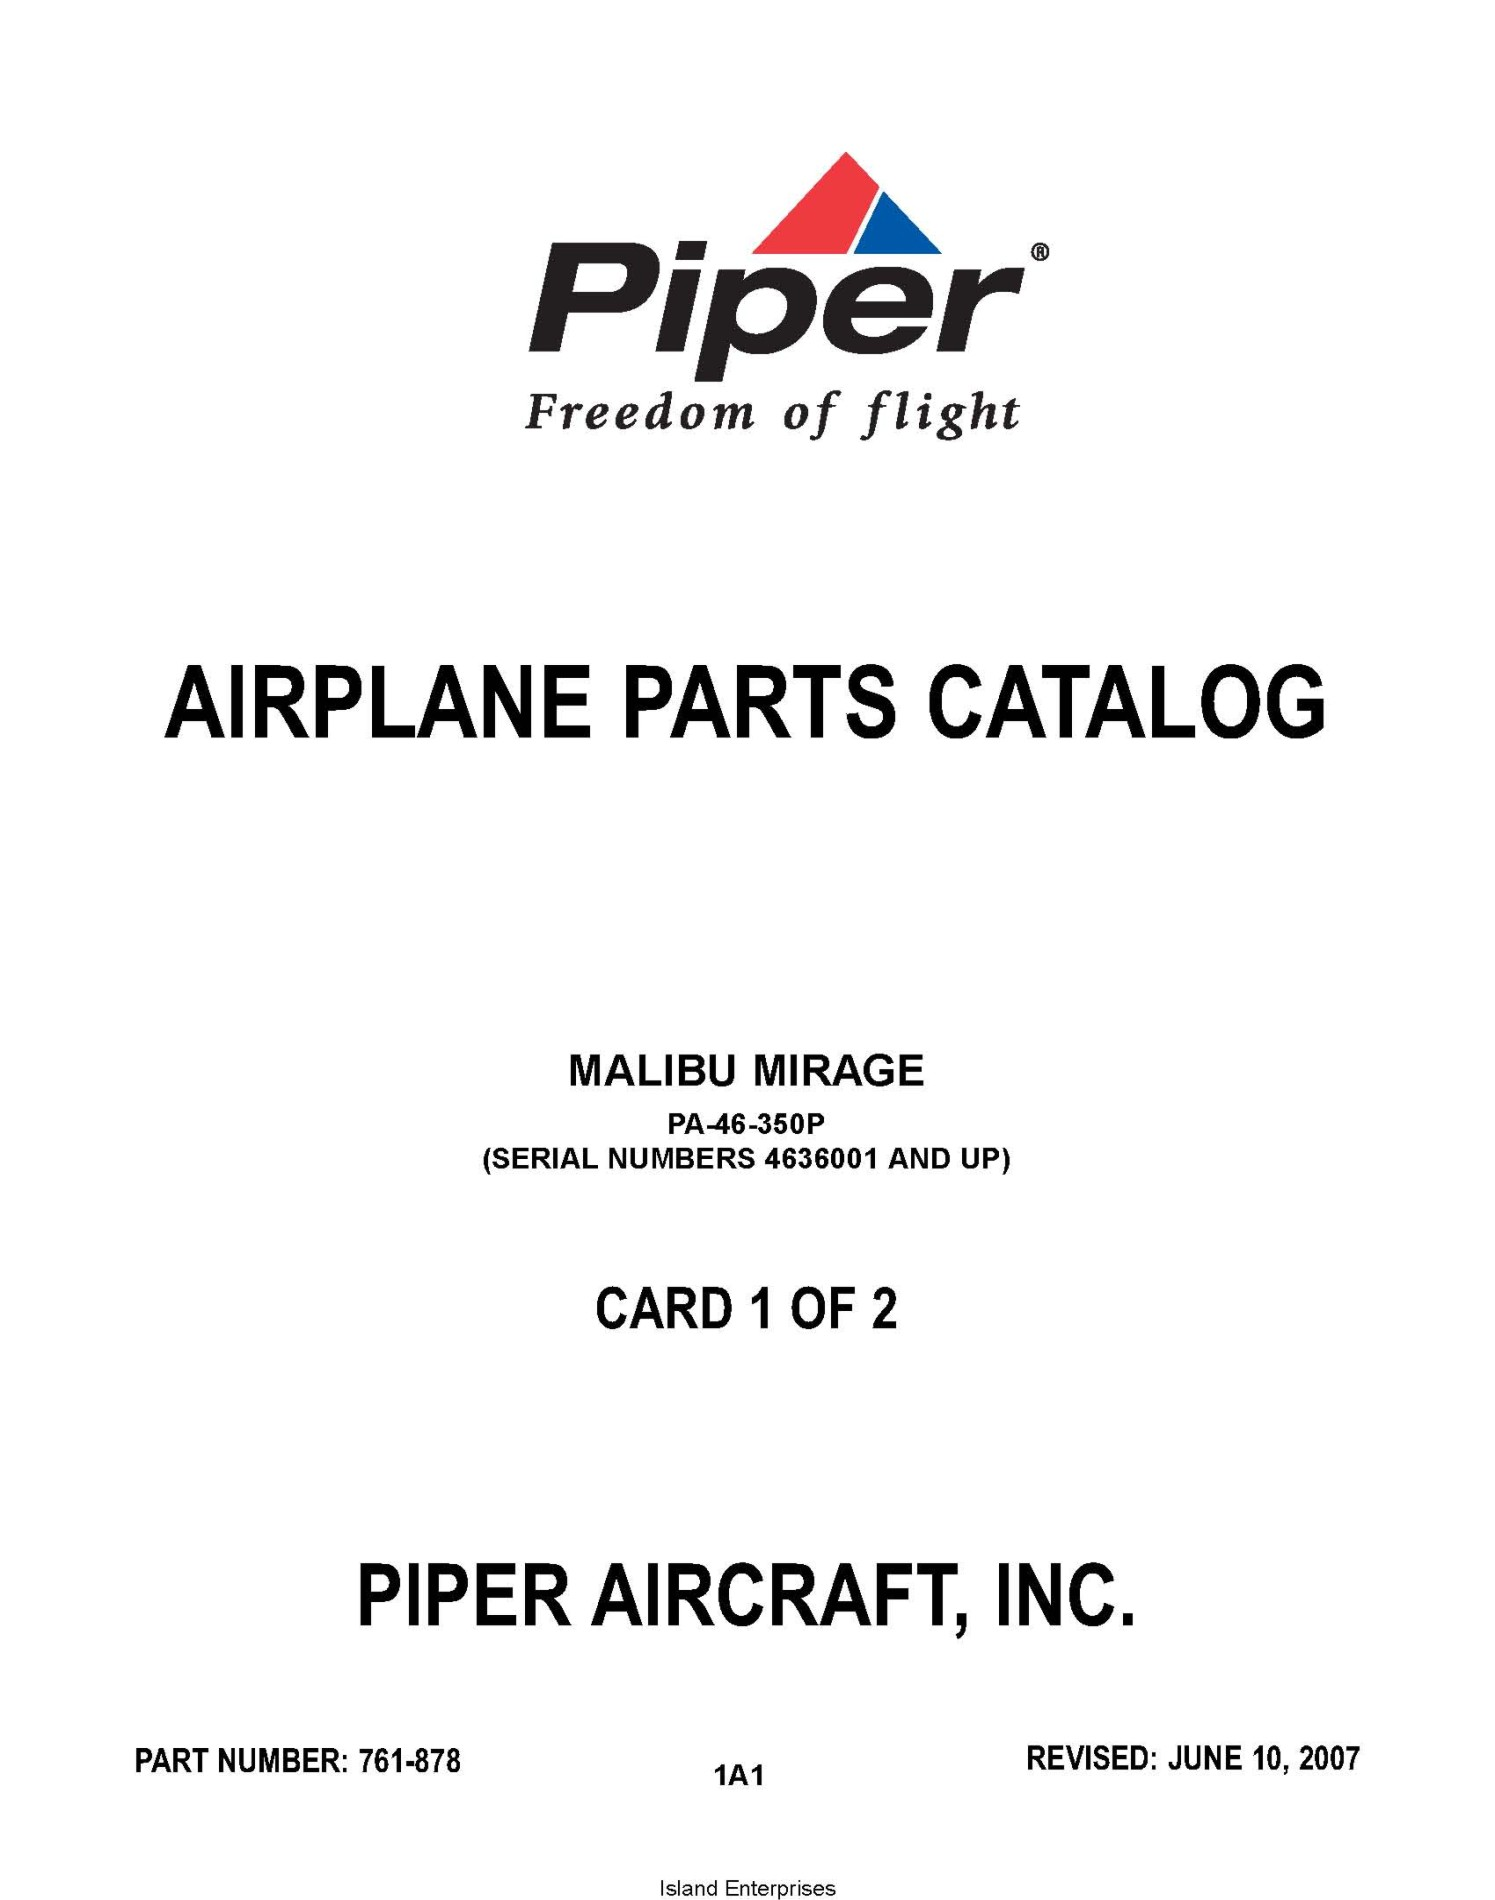 Piper Malibu Mirage PA-46-350P (Serial Numbers 4636001 and